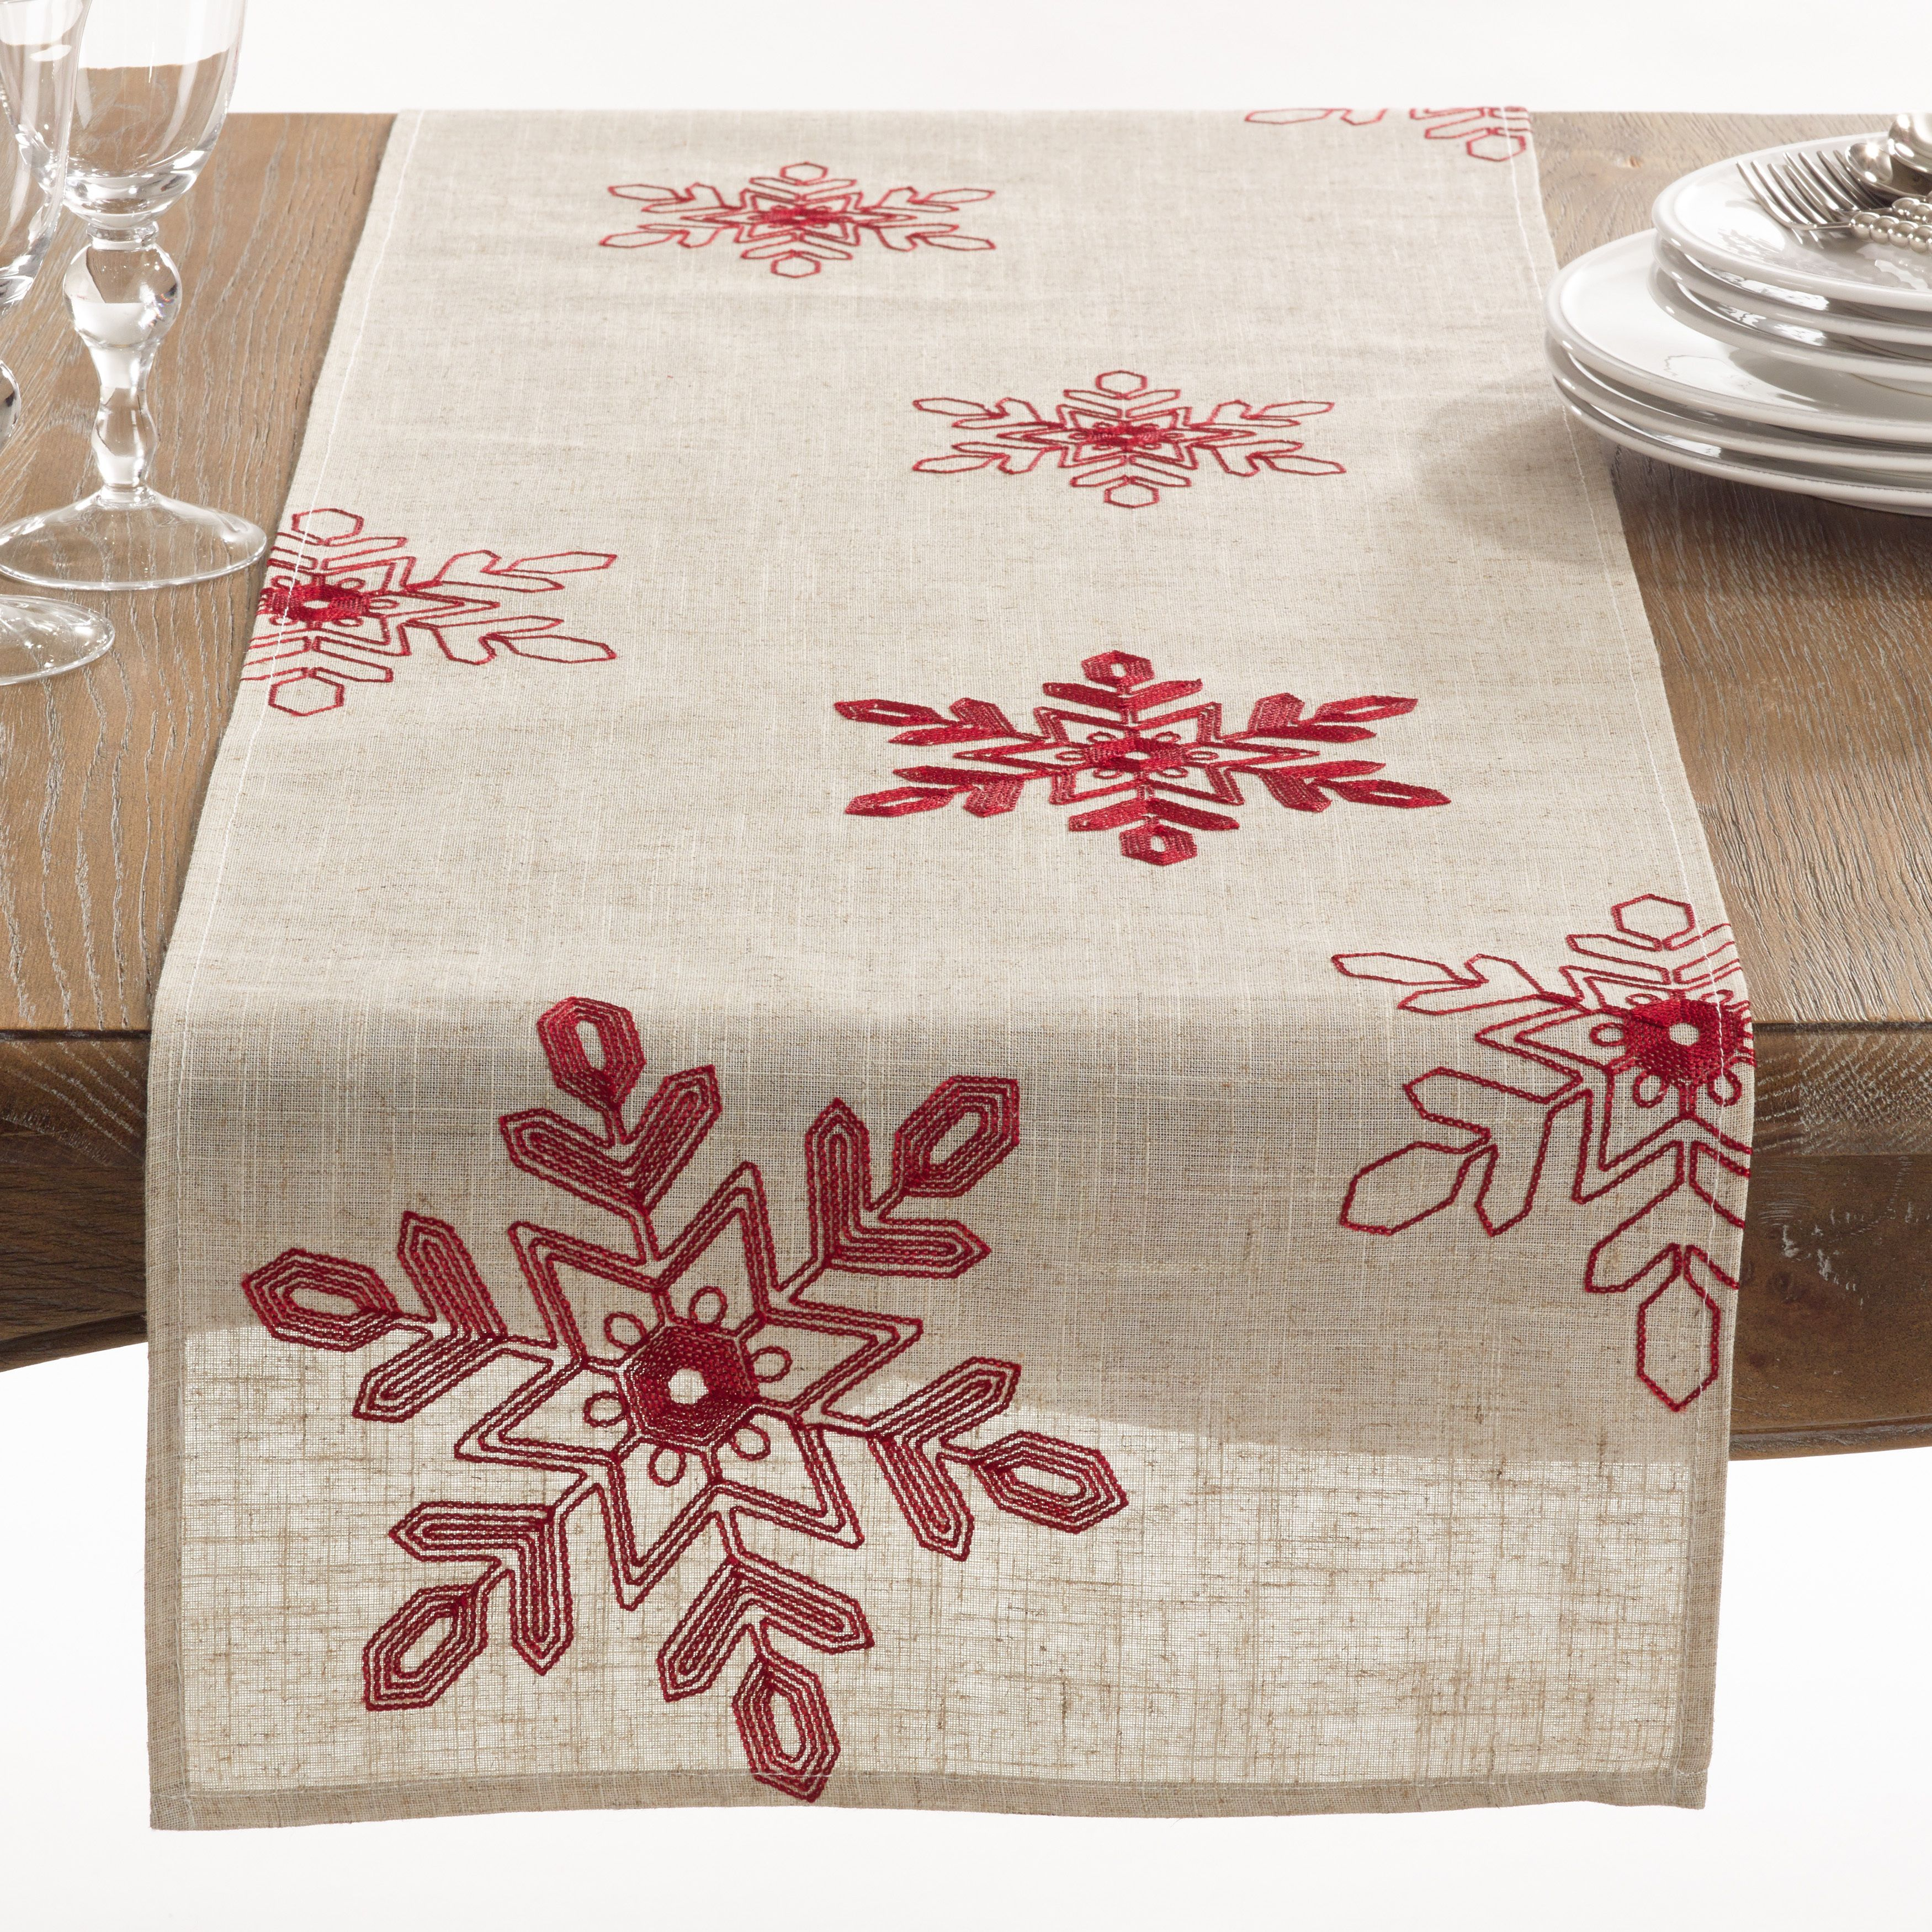 Saro Nivalis Collection Snowflake Design Runner Red Polyester Christmas Table Runner Christmas Table Cloth Embroidered Table Runner